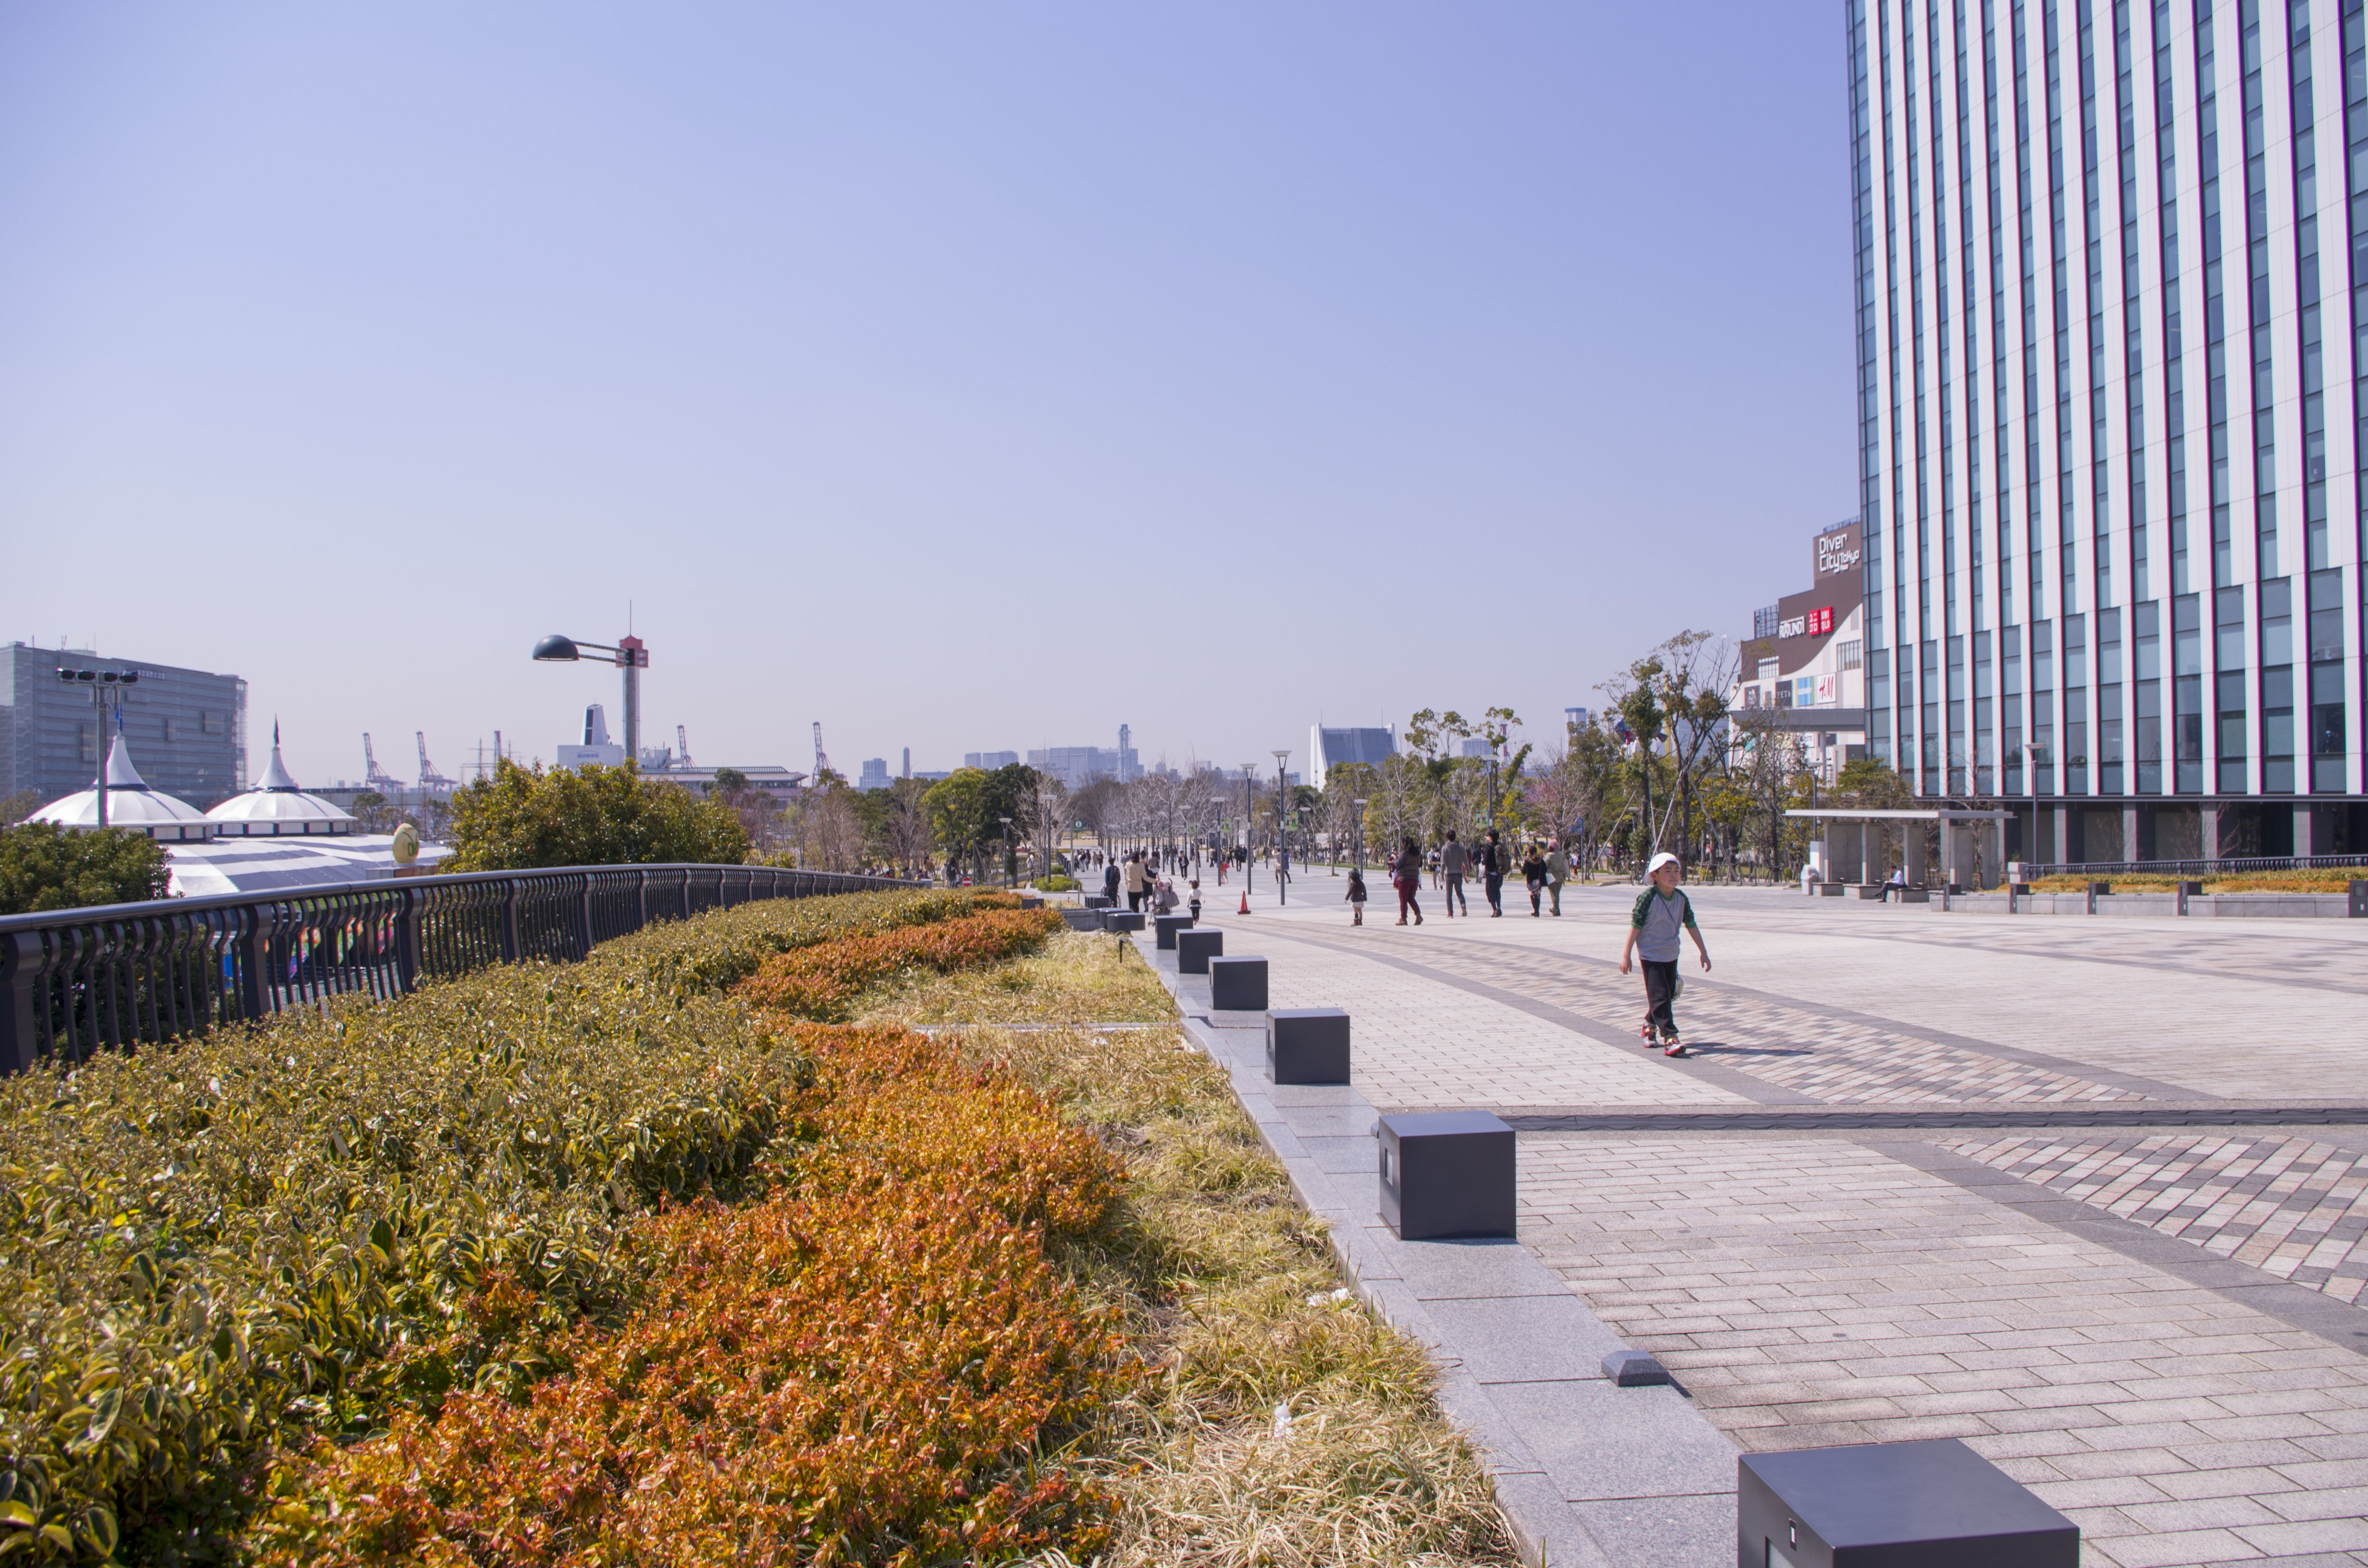 Boulevard on Odaiba with Divers City shopping center in the background